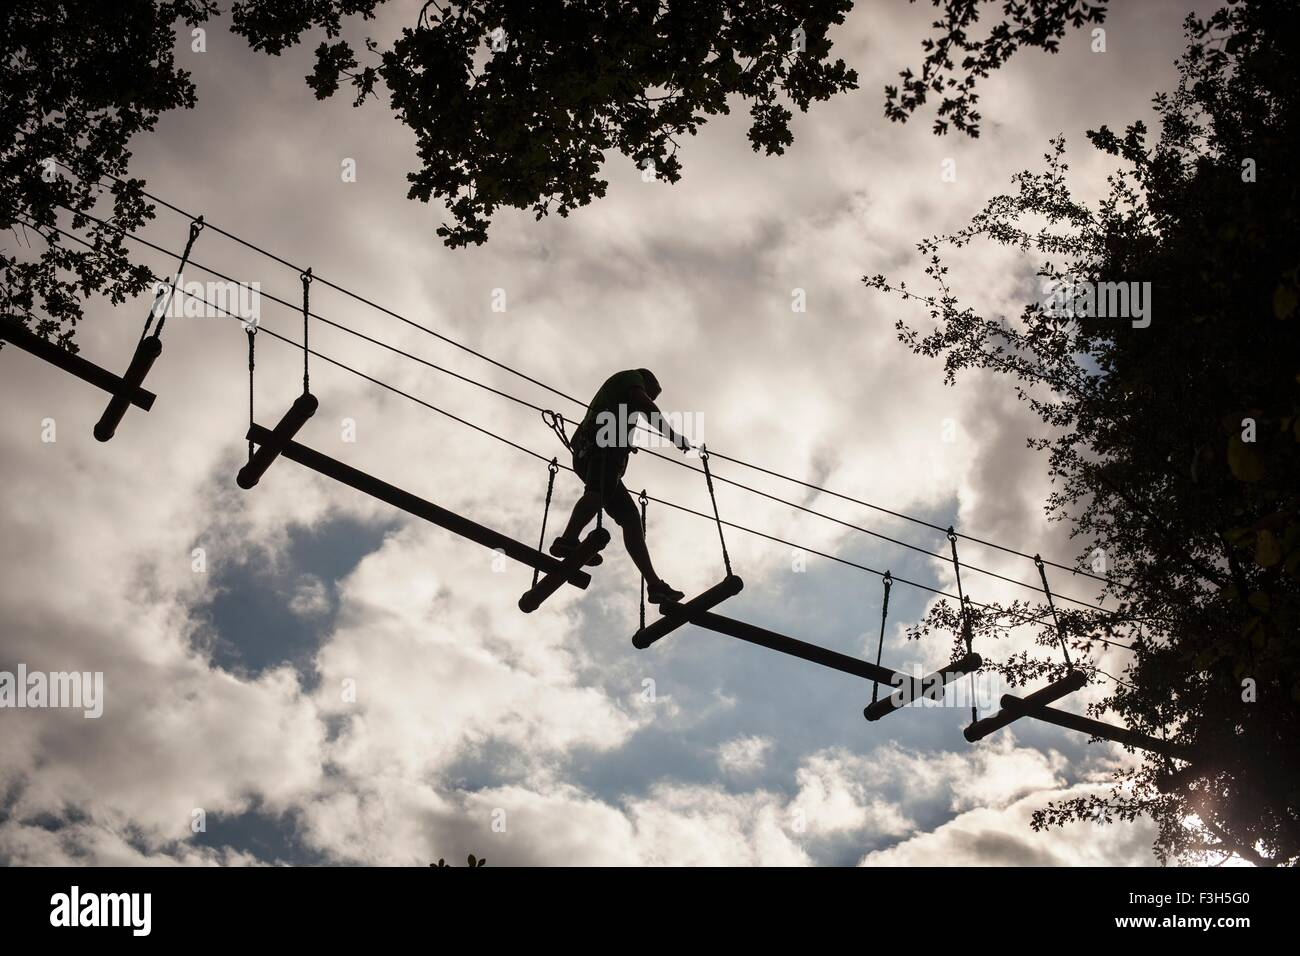 Mature man, high rope walking, low angle view - Stock Image